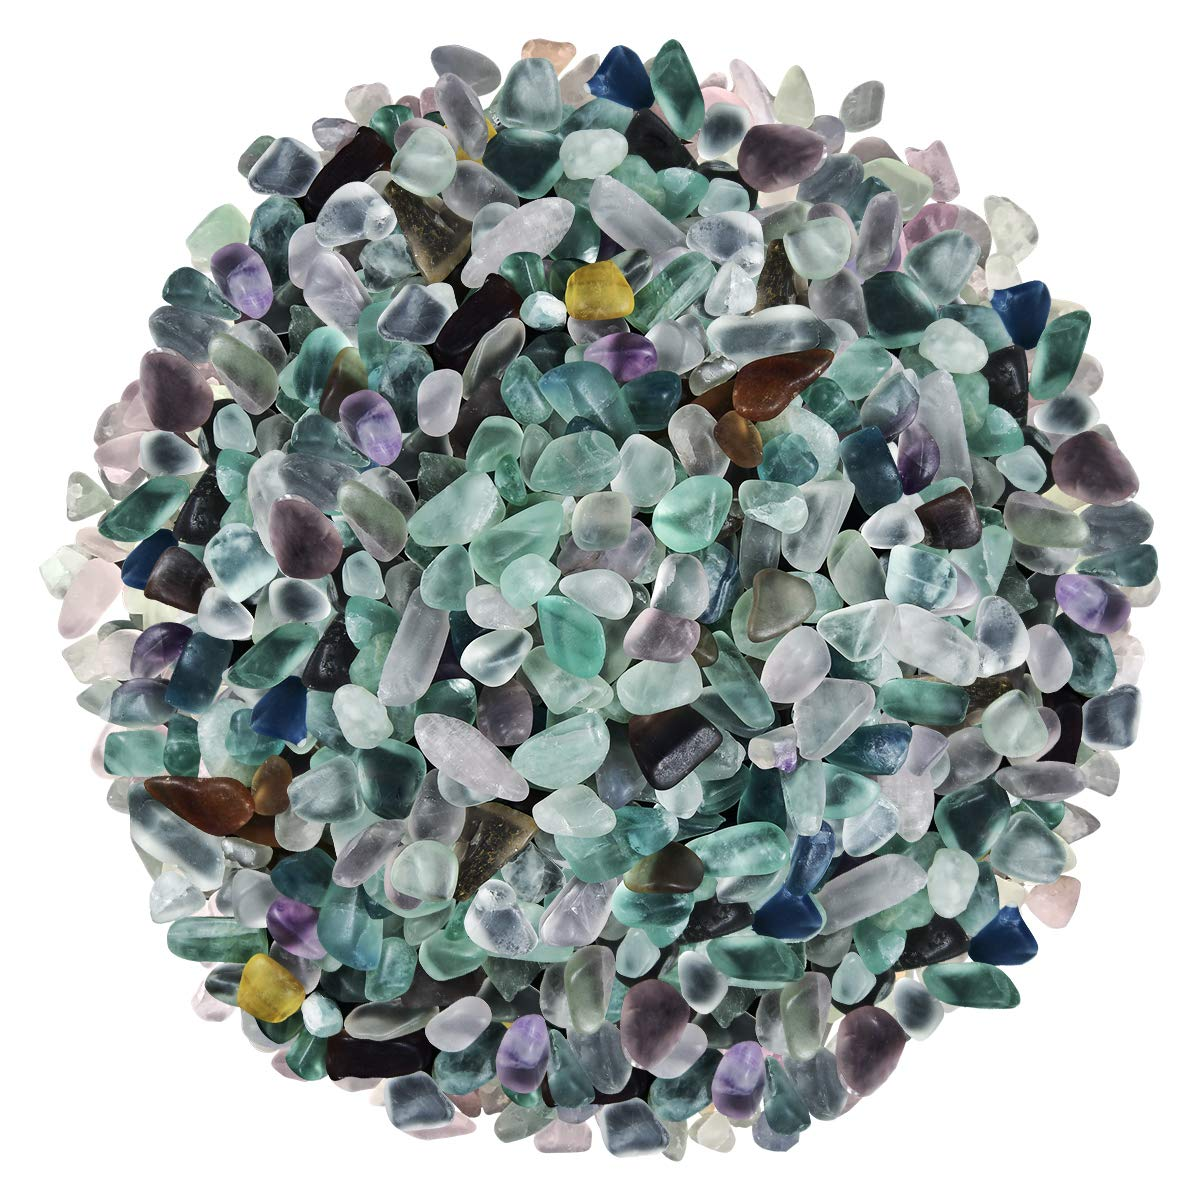 Natural Mix Color Undrilled Fluorite Polished Gravel Stone Irregular Shaped Rocks for Fish Aquariums & Tank Decorations|Substrate for Air Plants|Vase Fillers|DIY Jewelry|Wish Bottles Fillers|410 Grams by Mimosa